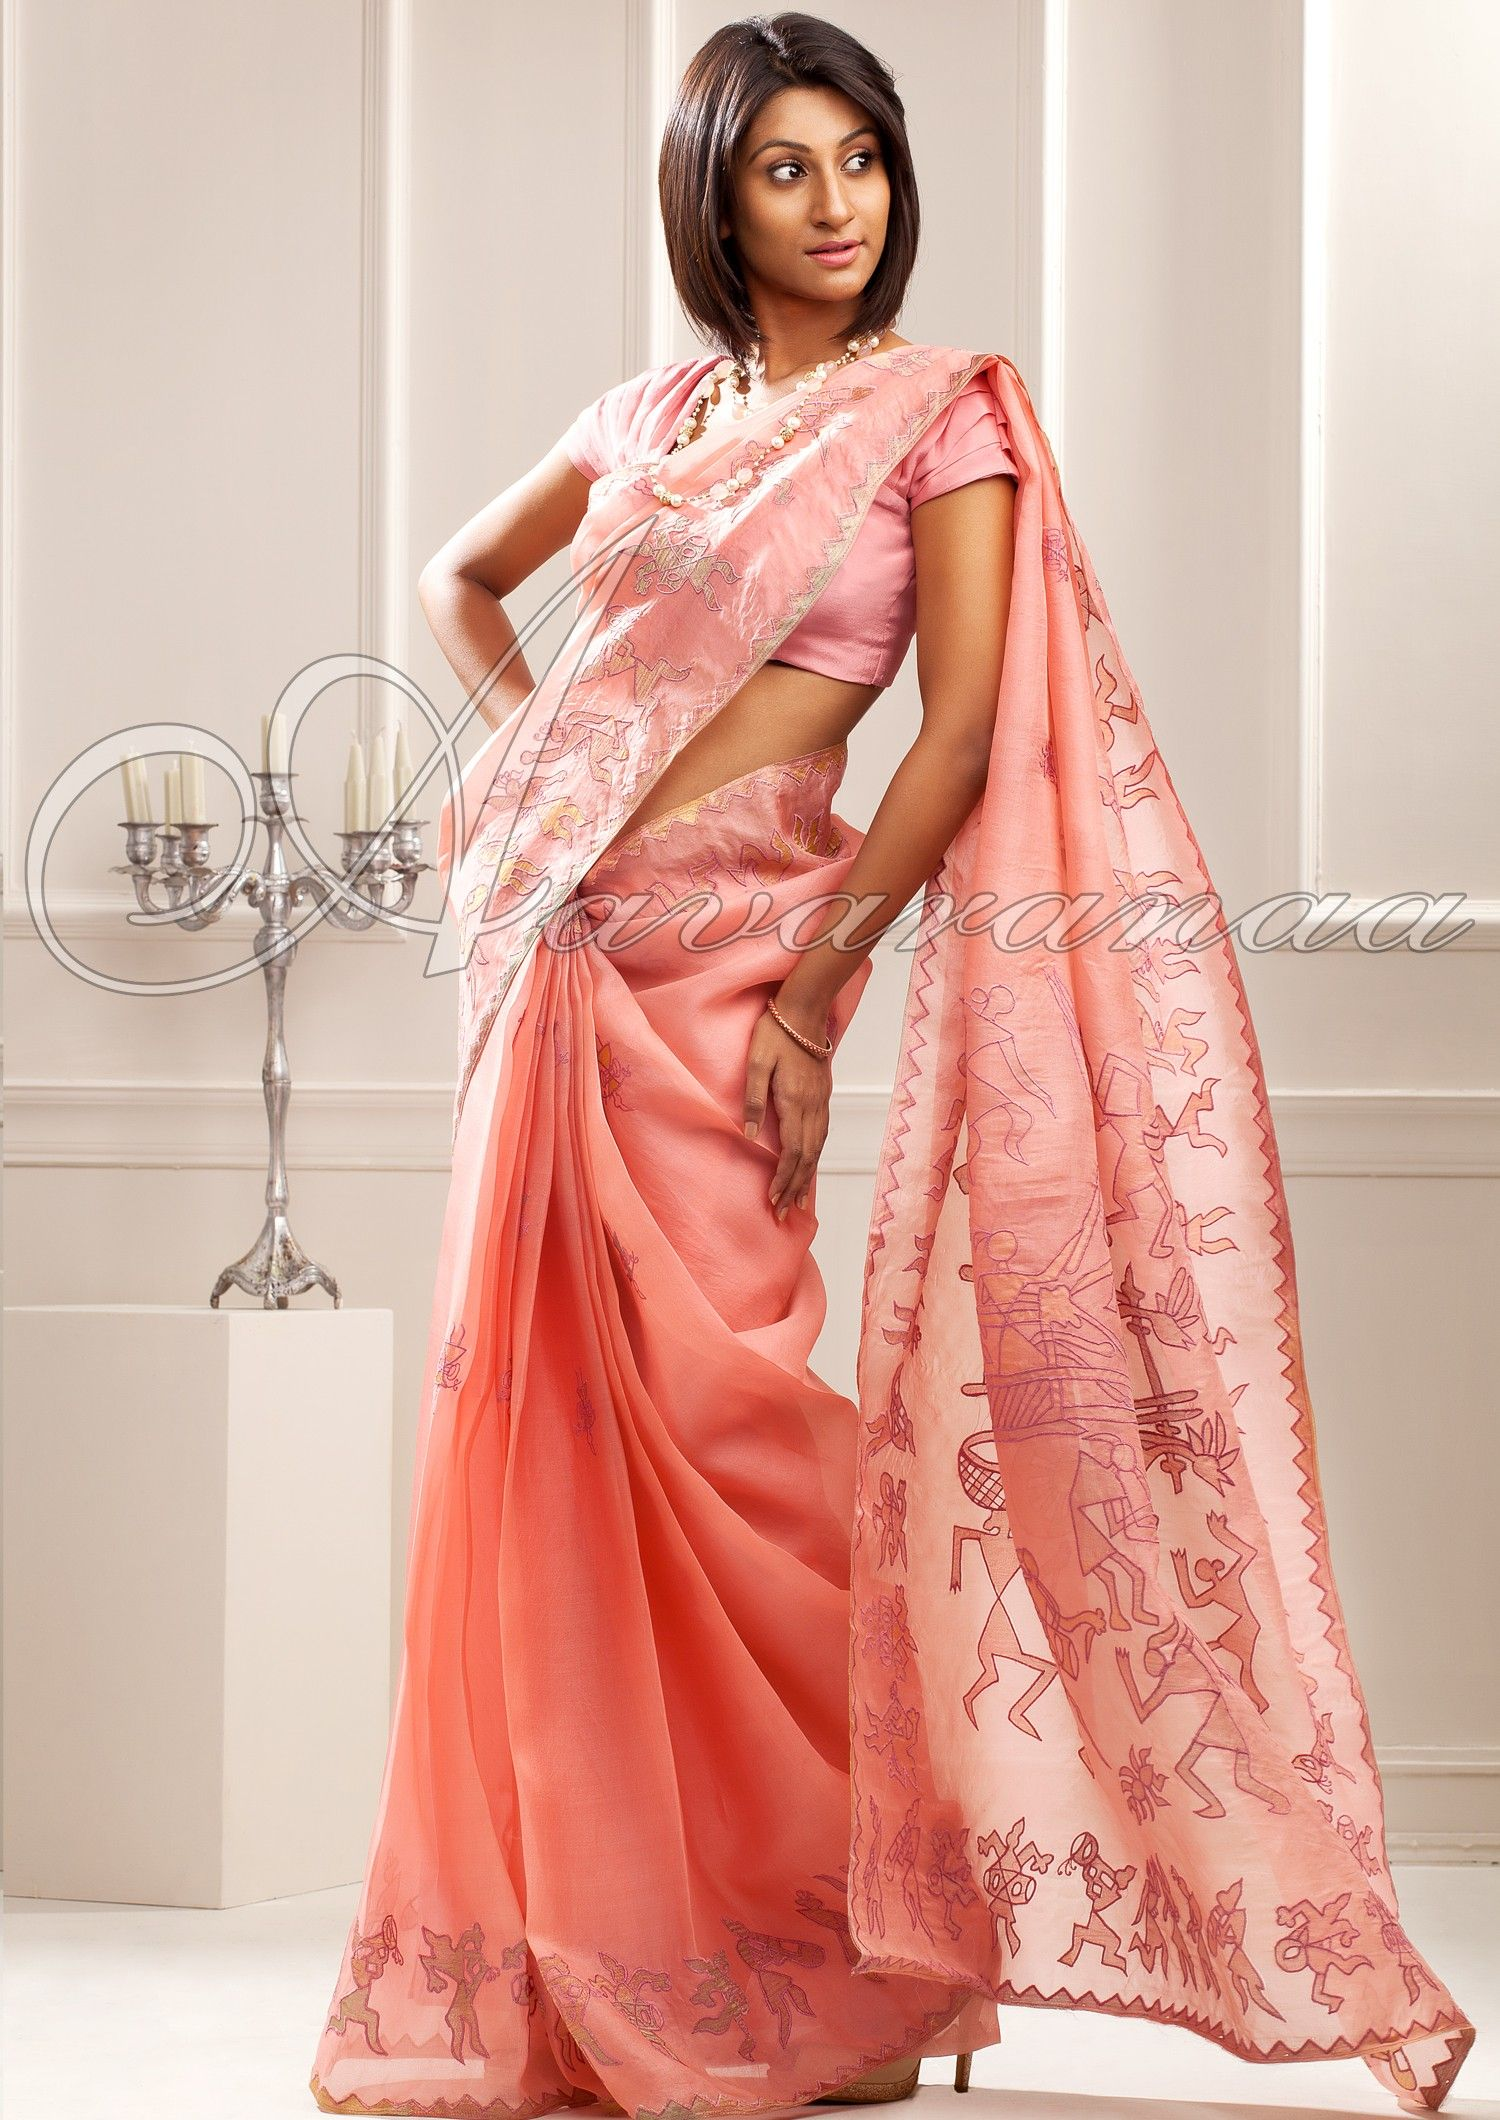 c522d6a277 Aavarnaa - A light pink organza saree with multicolor tissue appliquéd and  embroidered in the traditional worli design along the border and a creative  pallu